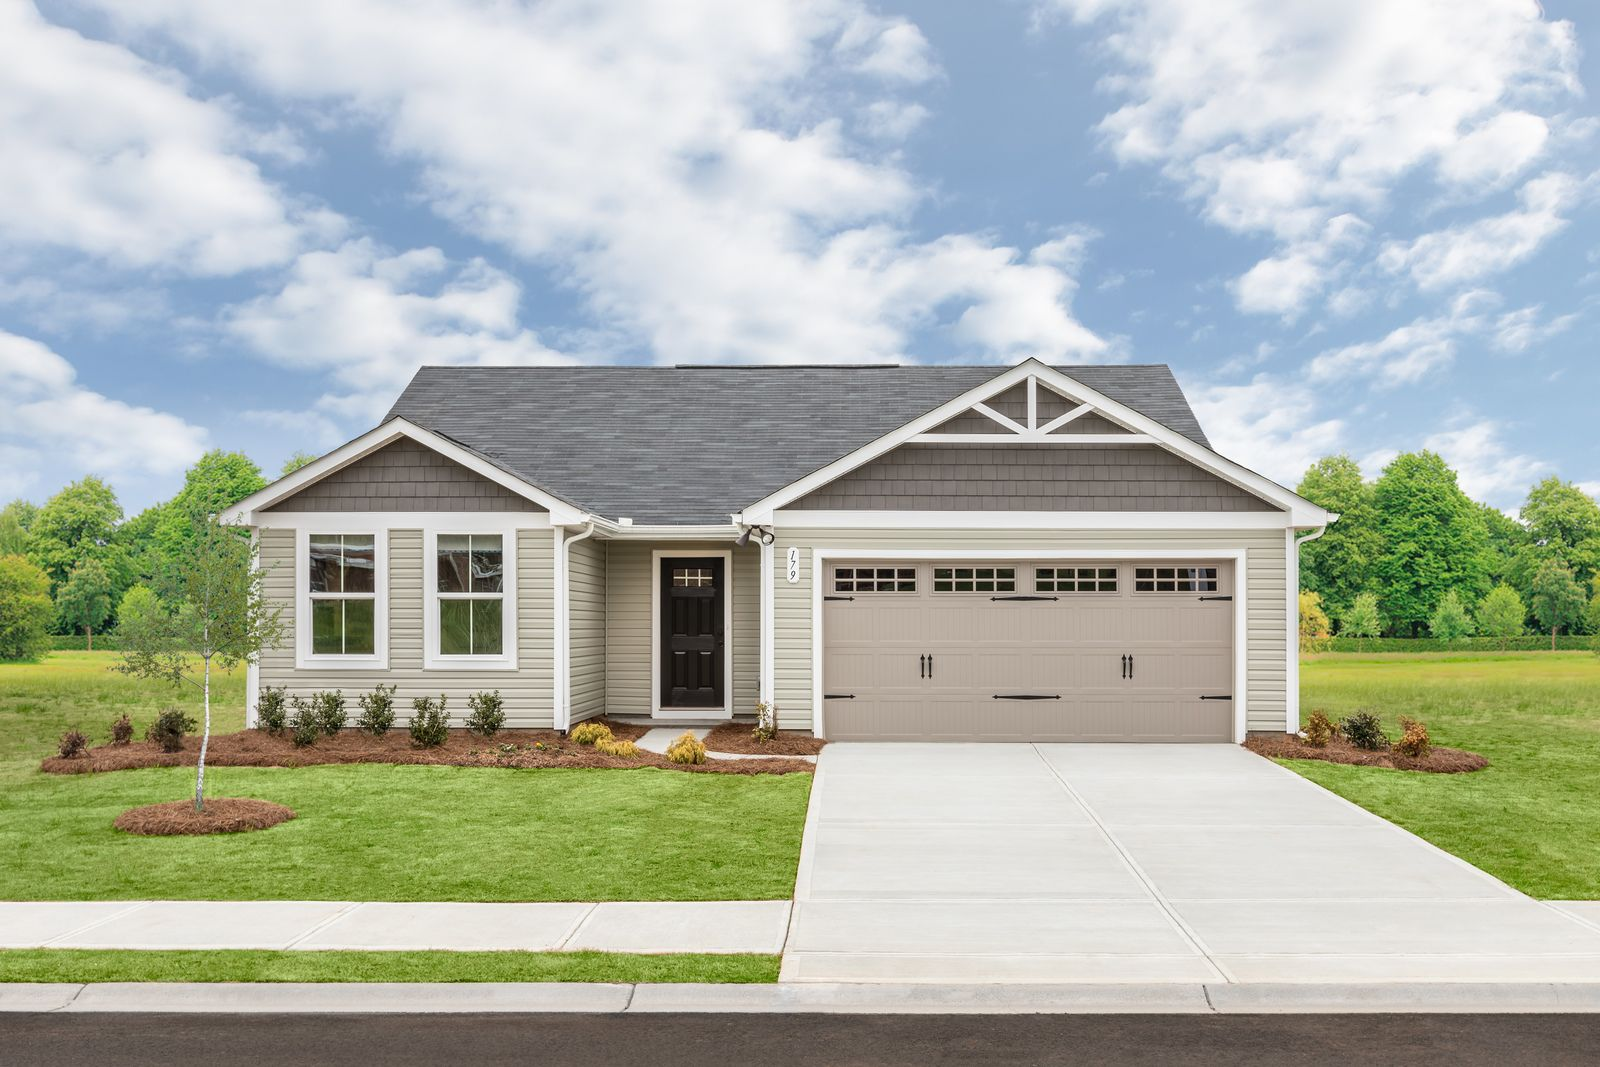 'The Grove at Shady Creek' by Ryan Homes-CVL in Harrisonburg